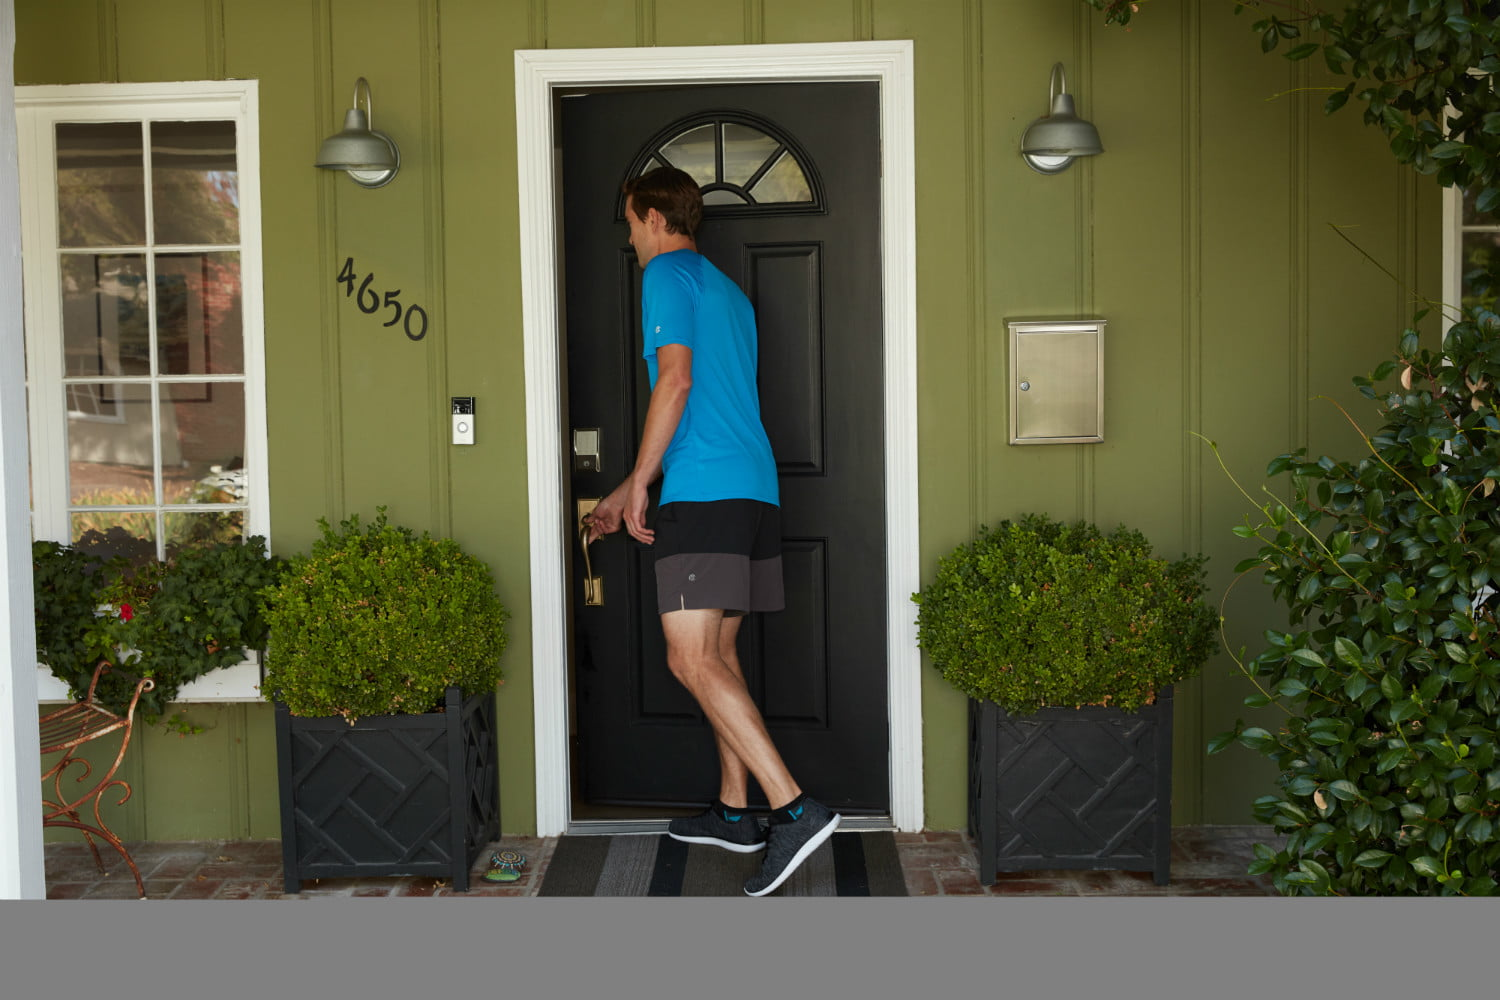 Key by Amazon adds keyless entry to garages, Ring devices, business properties